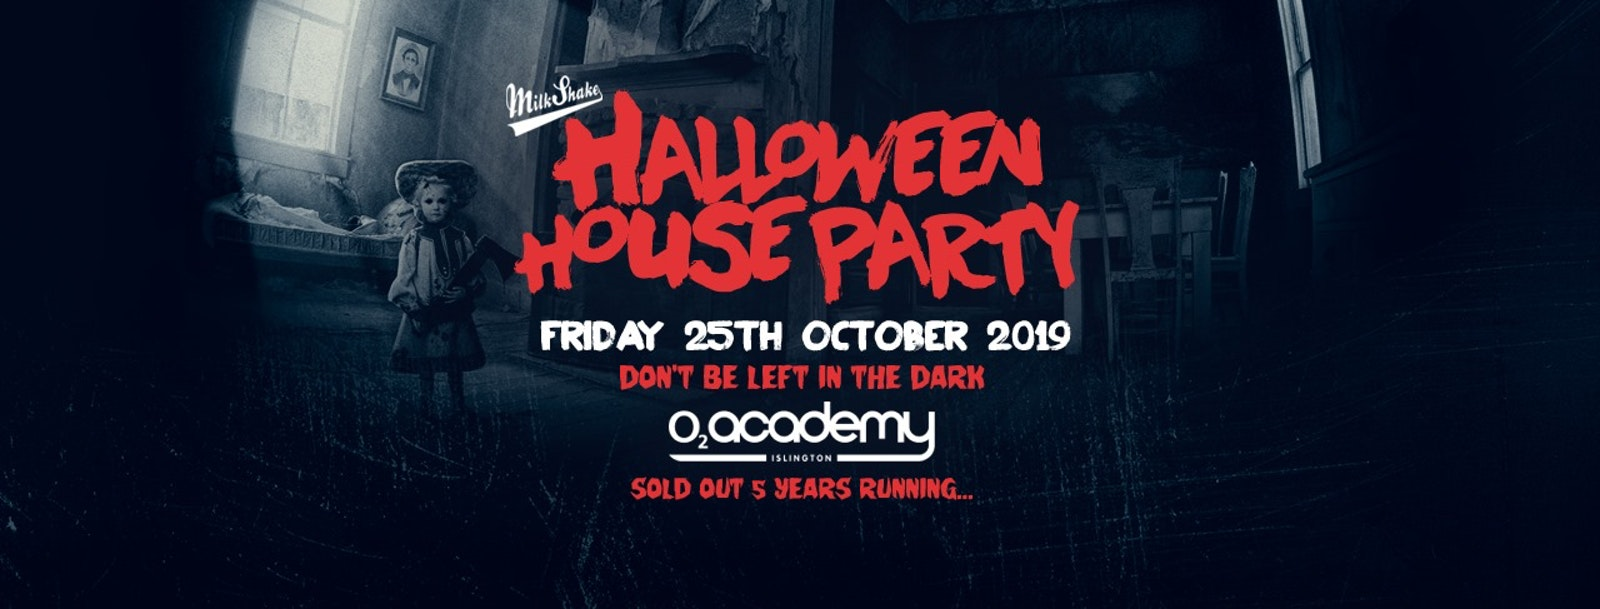 Milkshake Halloween Haunted House Party 2019 – O2 Academy Islington | Friday October 25th